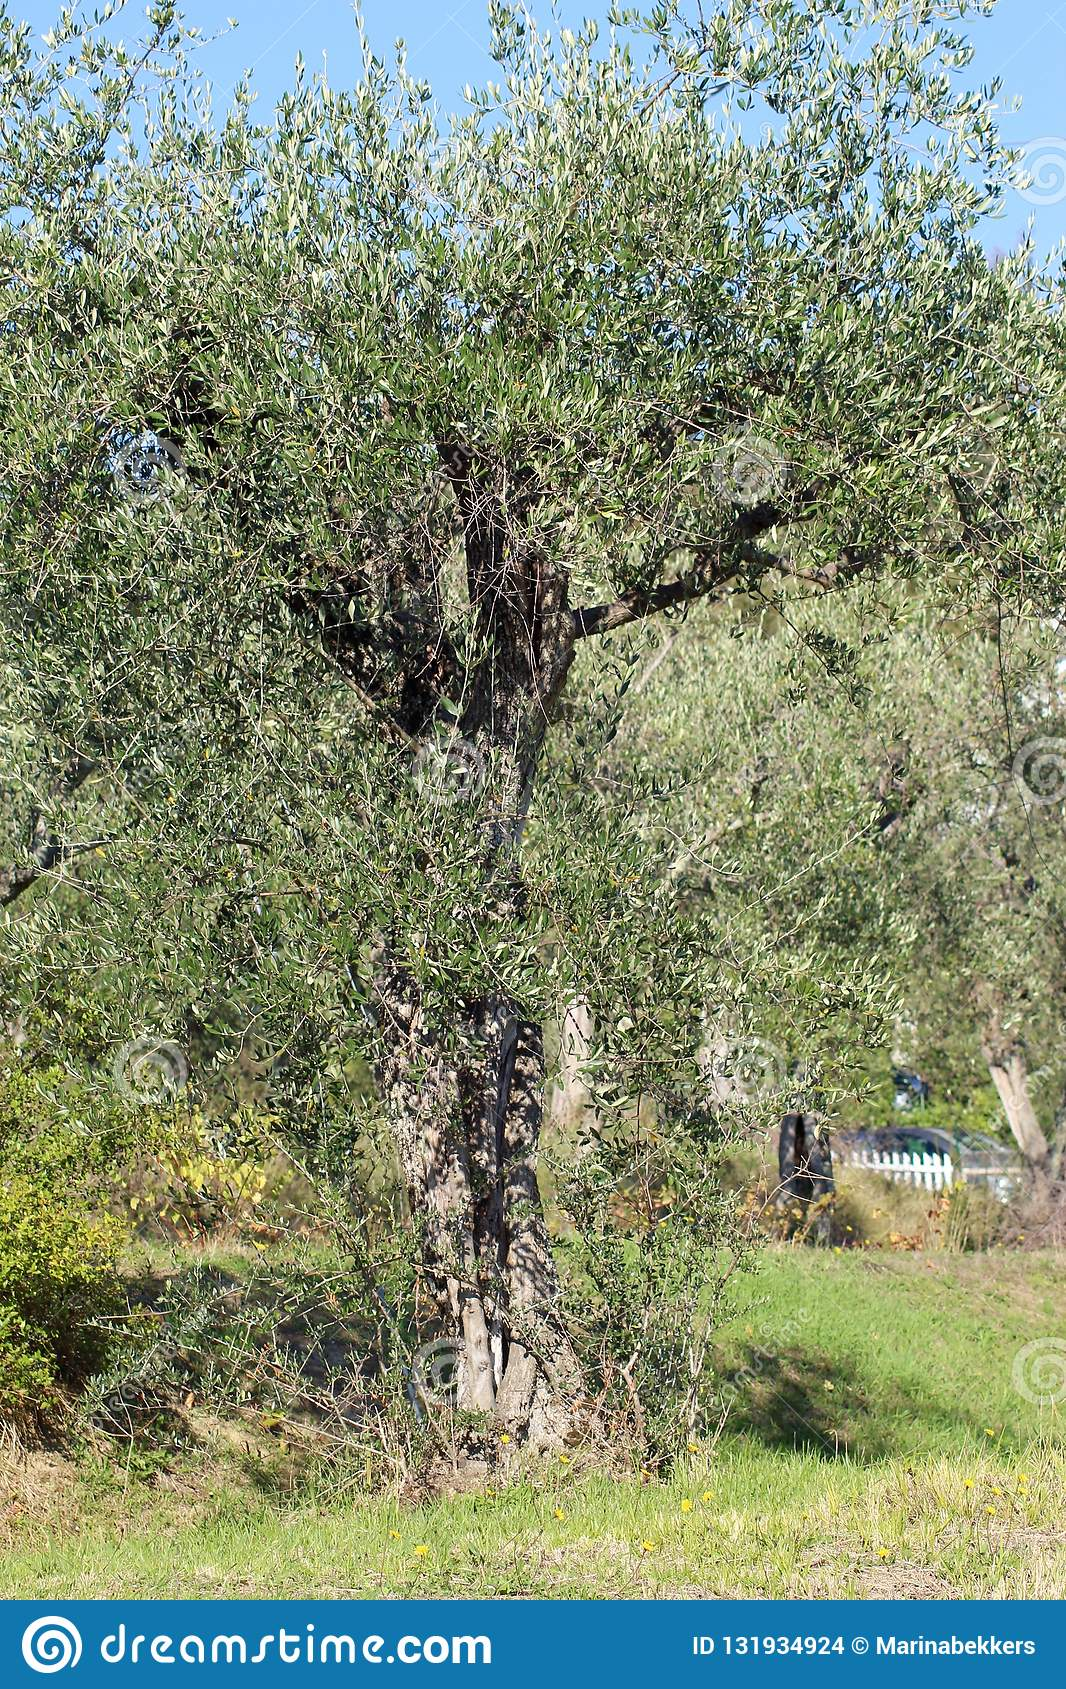 The olive tree in the garden